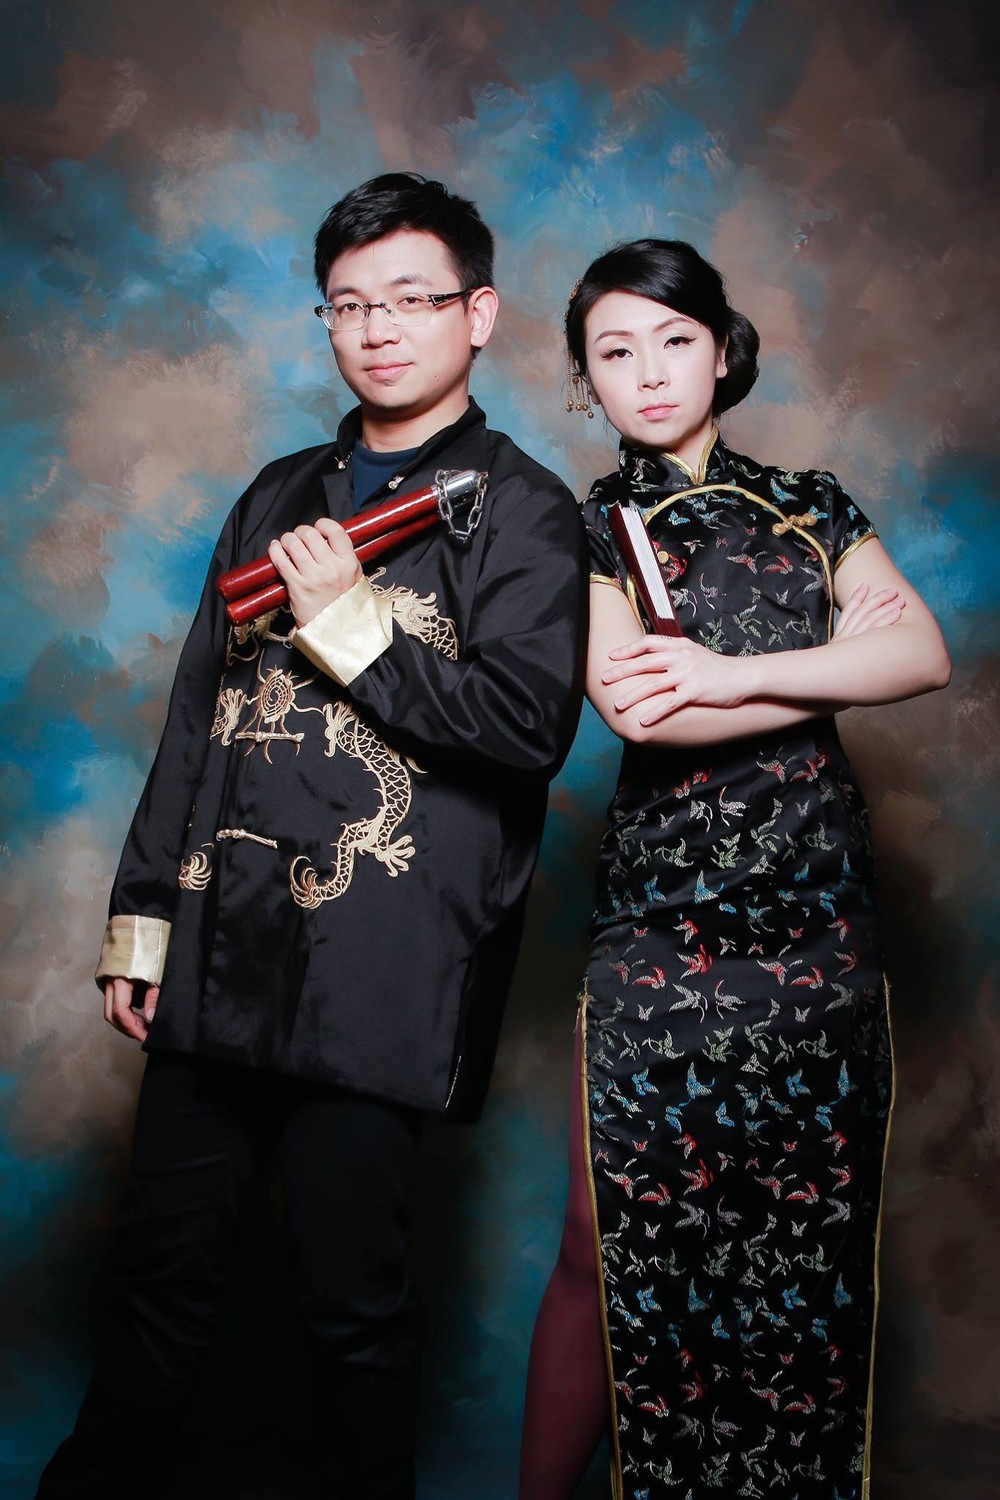 Chin Liu and her brother, posing for a photo in Taipei studio in 2015. Photo courtesy of Chin Lu, from  http://www.vice.com/en_au/read/the-not-quite-american-feeling-of-being-a-15-generation-immigrant